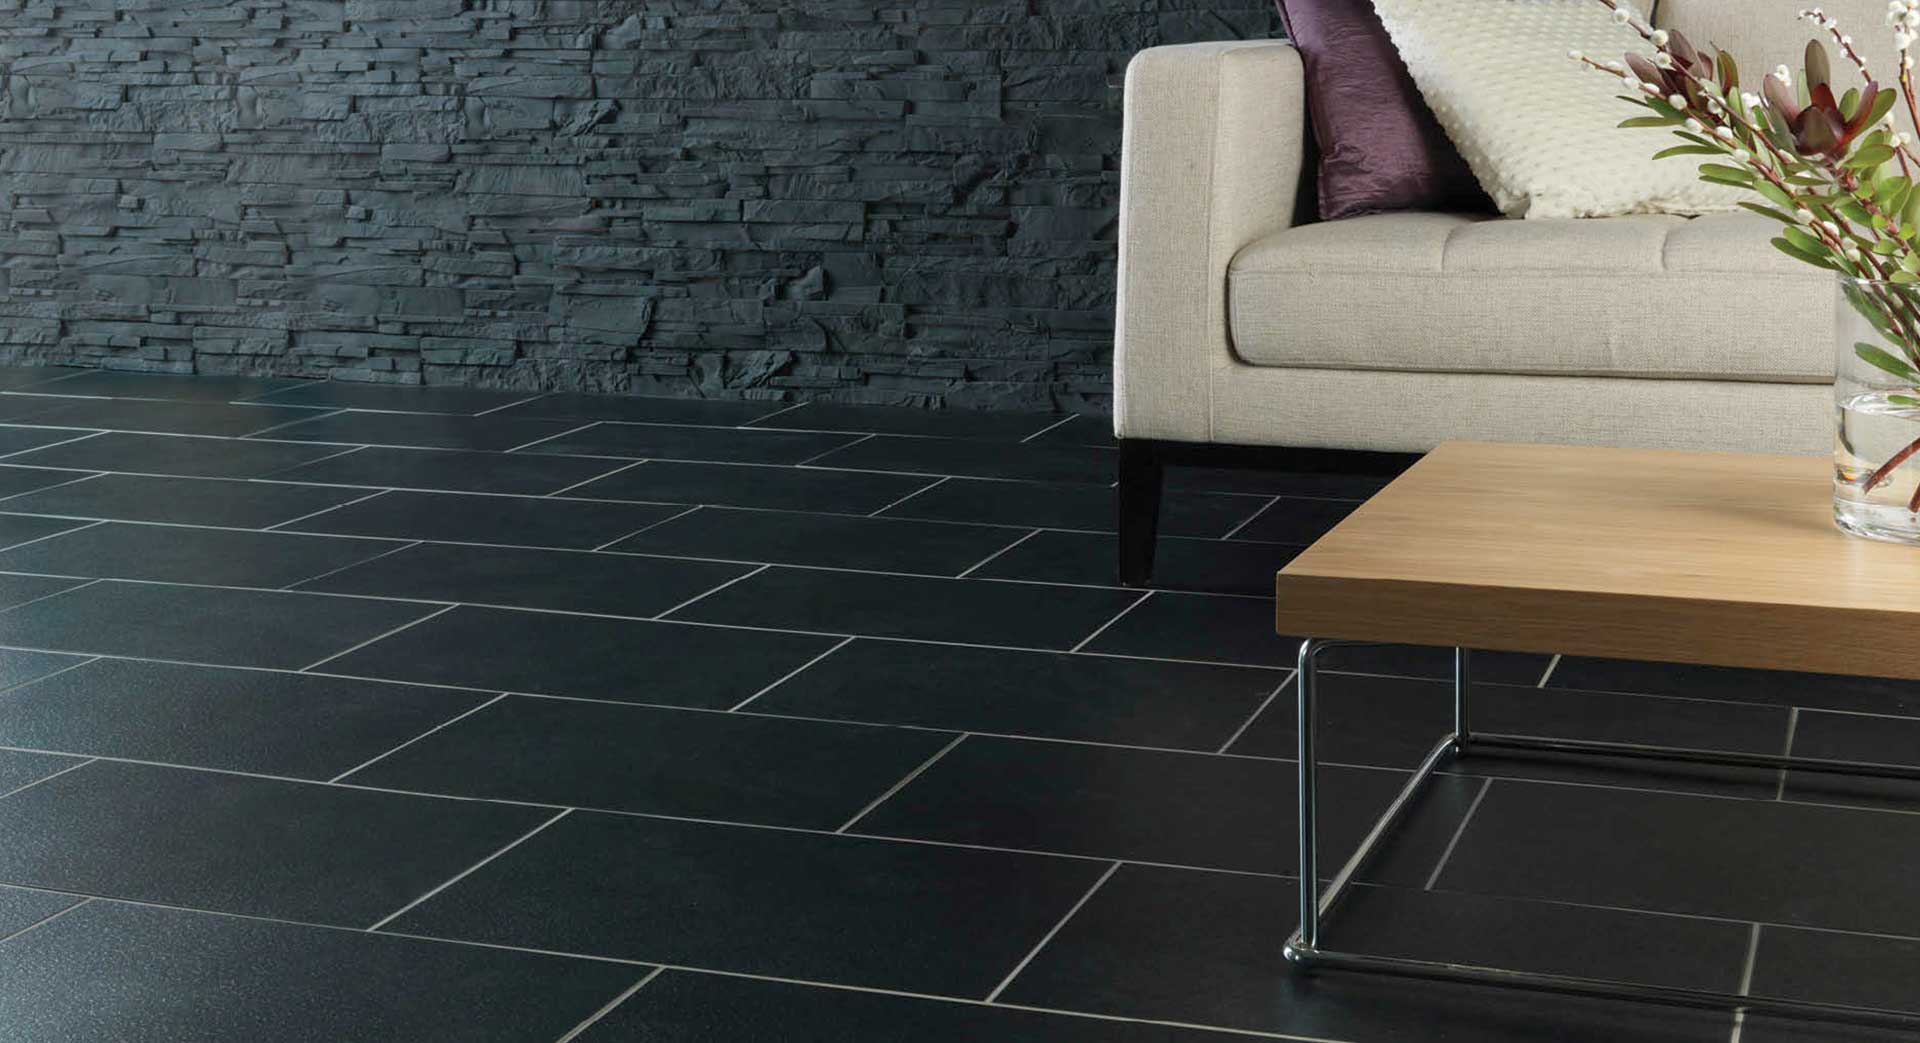 Commercial ceramic floor tiles gallery home flooring design sci flooring inc your commercial flooring provider michigan ceramic tile stone marialoaizafo gallery doublecrazyfo Gallery